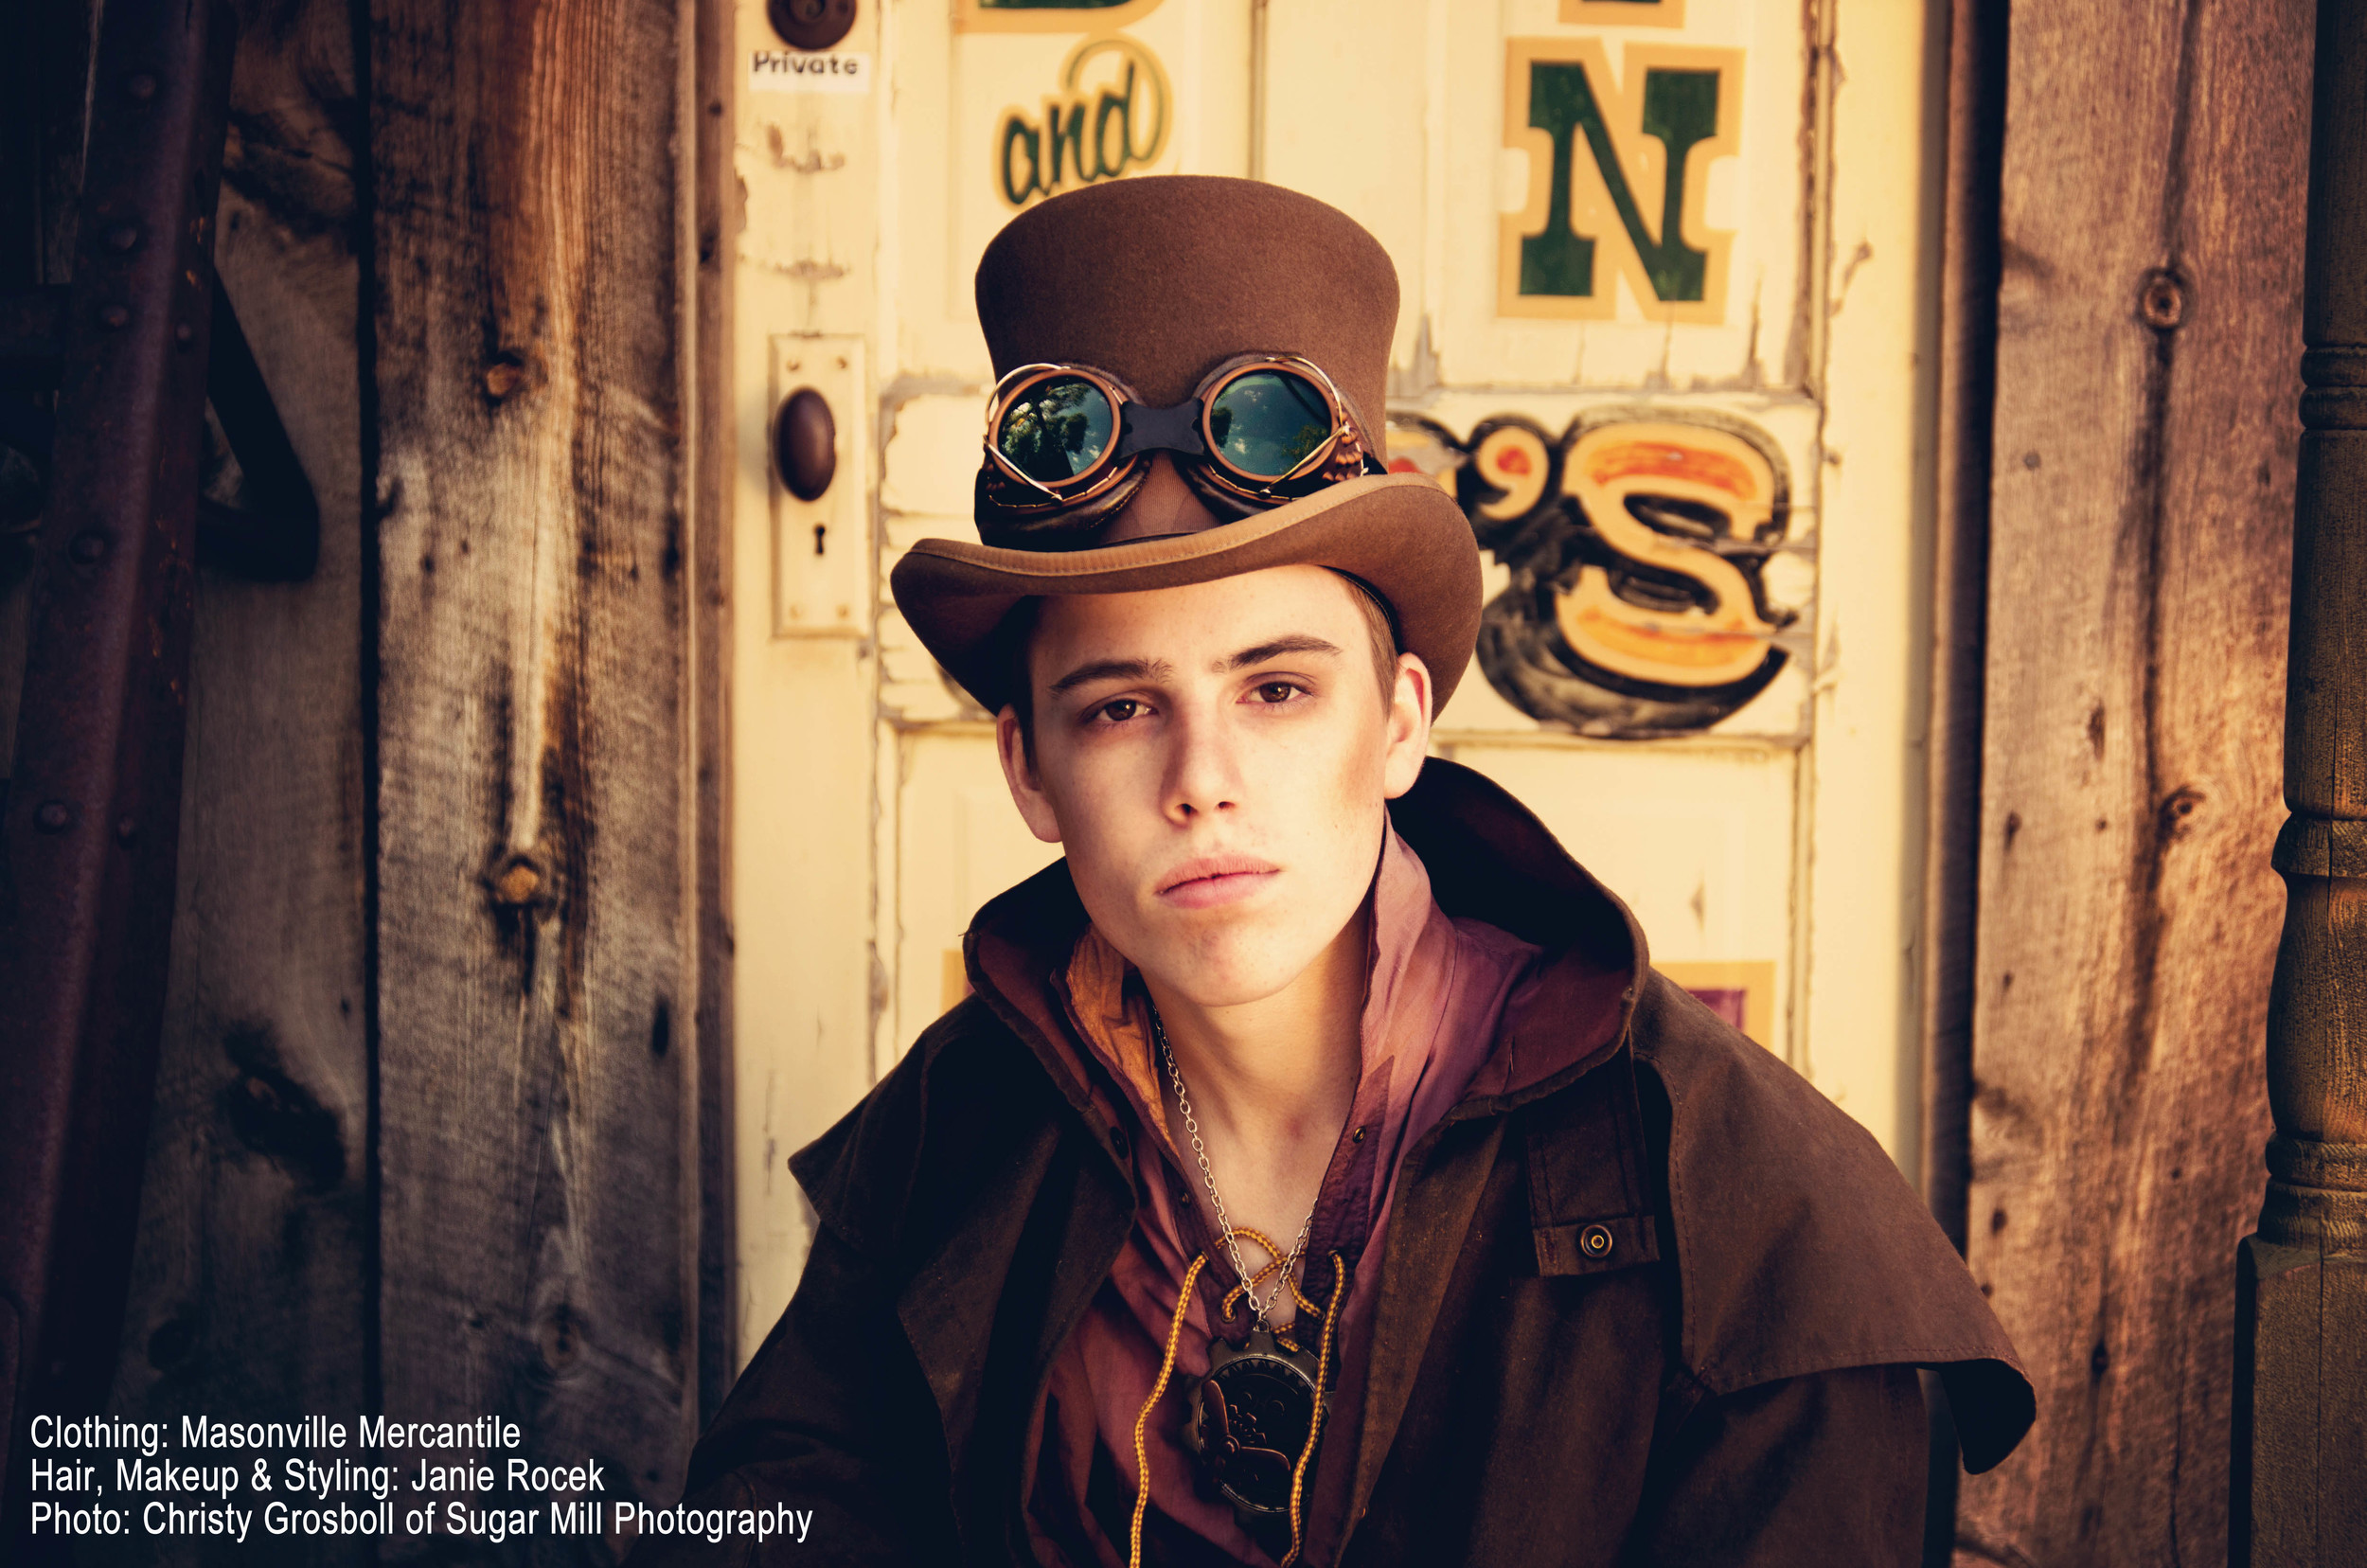 A fun, inventive, out-of-the-box high school senior portrait with Sugar Mill Productions.